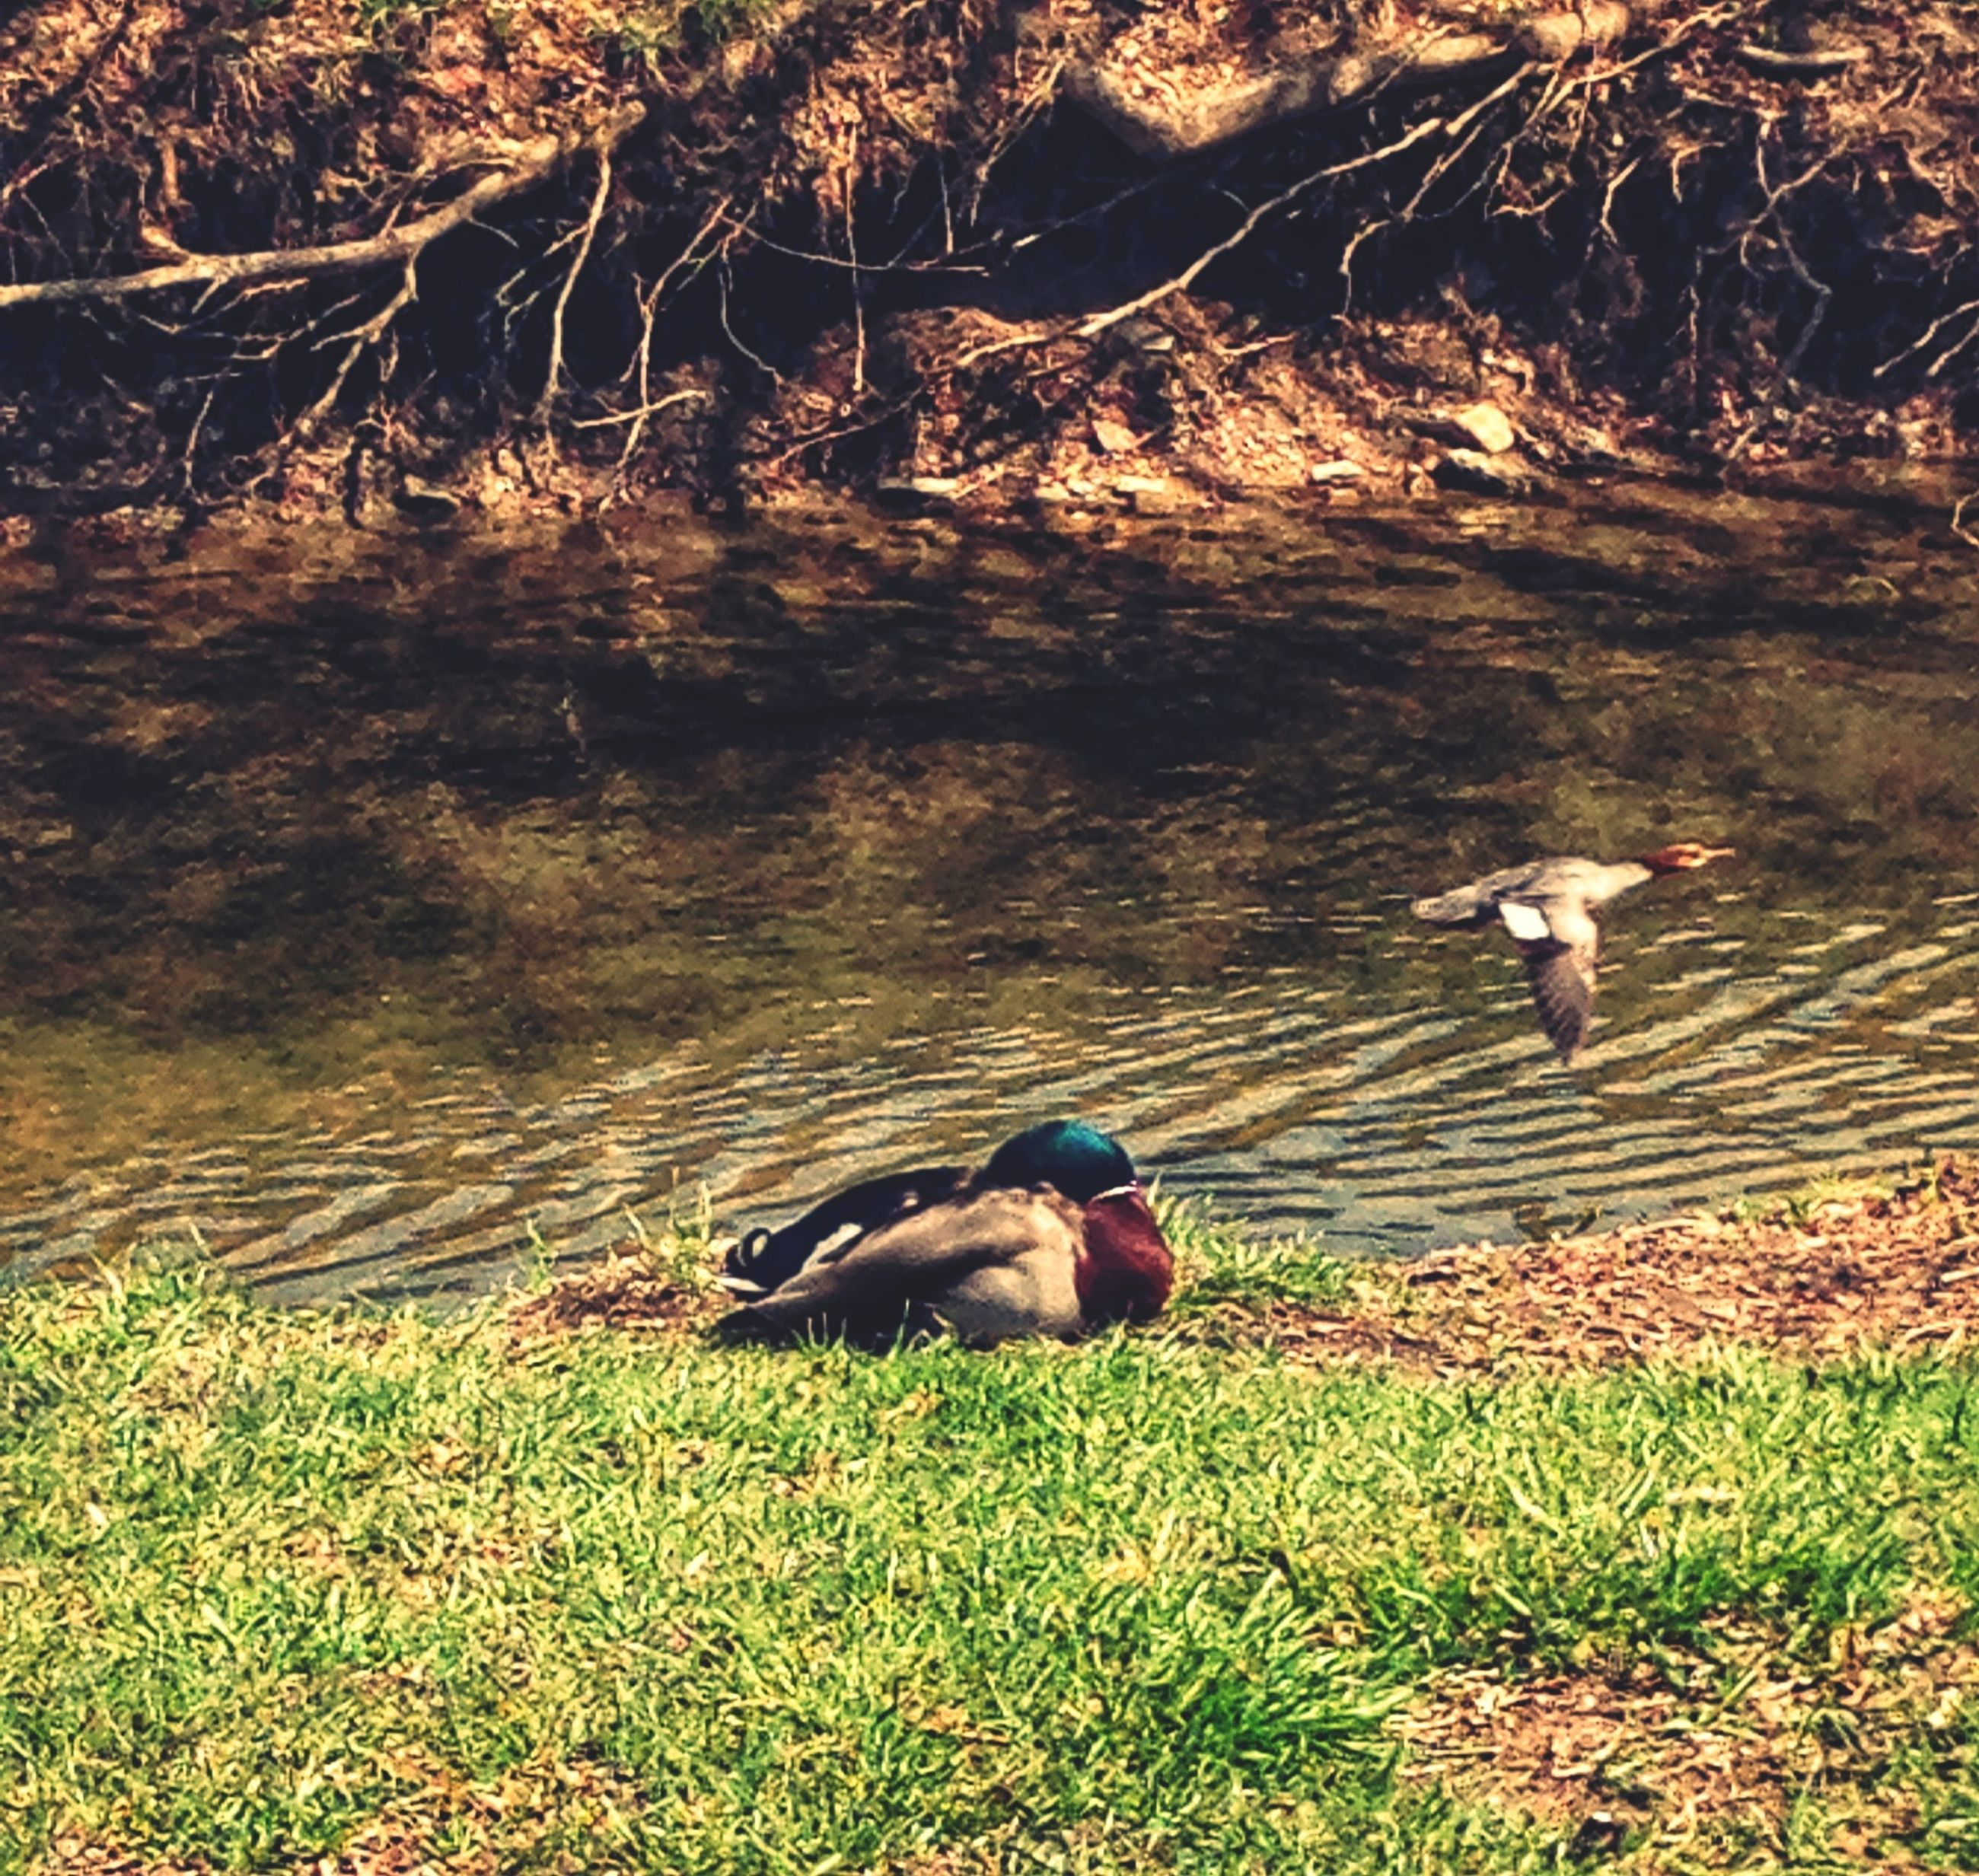 animal themes, grass, one animal, animals in the wild, domestic animals, field, lake, bird, wildlife, duck, mammal, water, nature, grassy, dog, pets, two animals, standing, outdoors, lakeshore